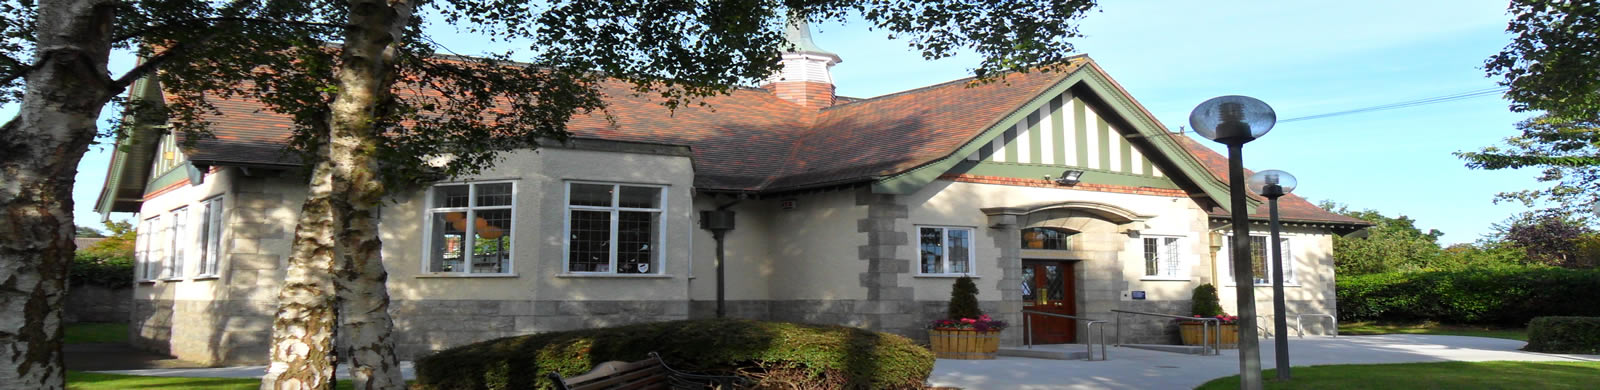 Cabinteely Library